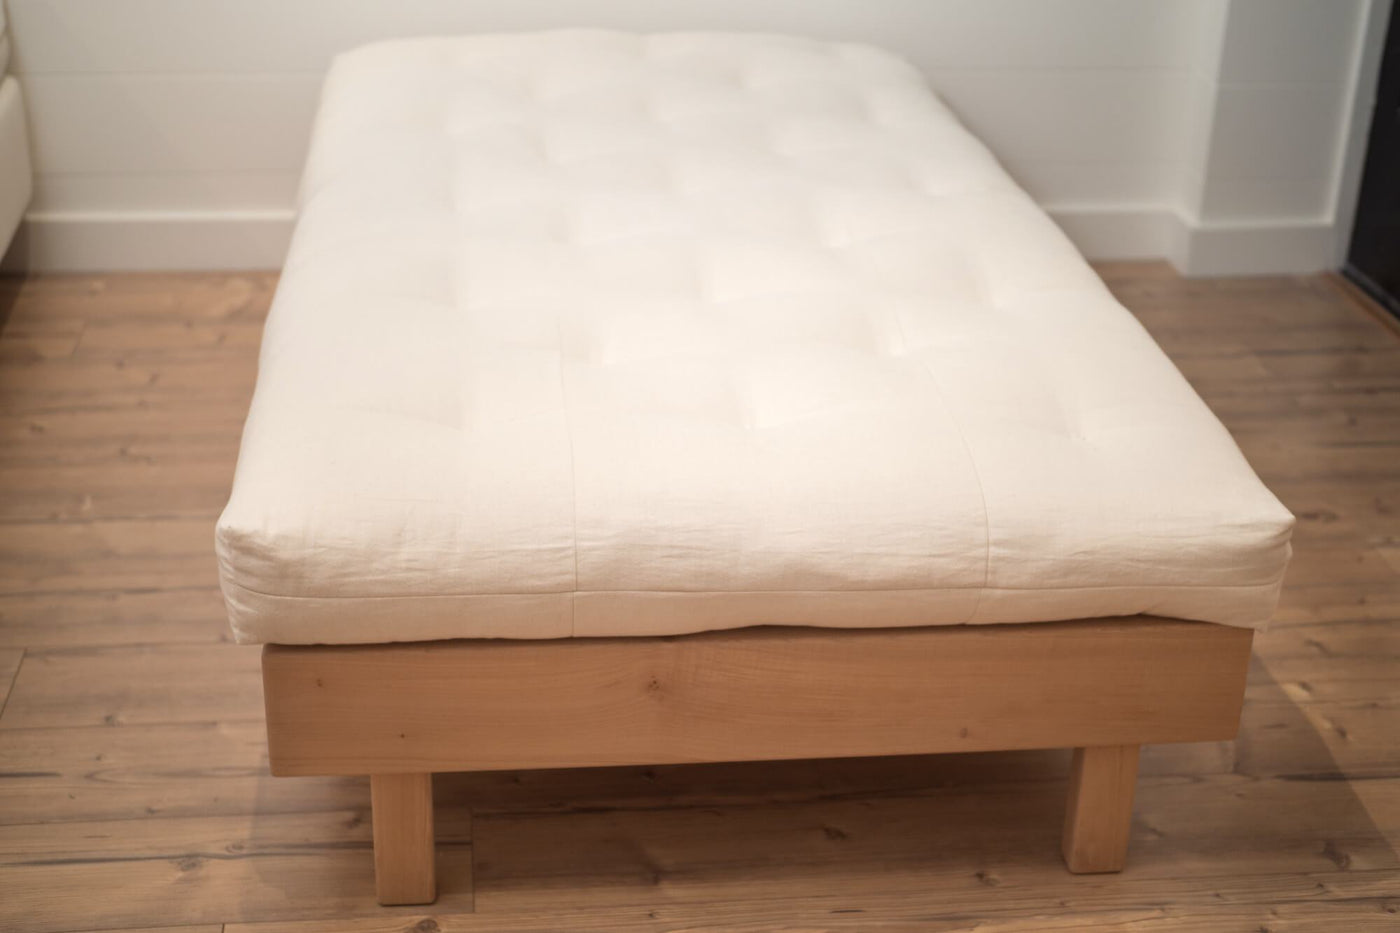 Shikibutons and futons. Organic and natural mattresses at Resthouse Sleep Solutions.